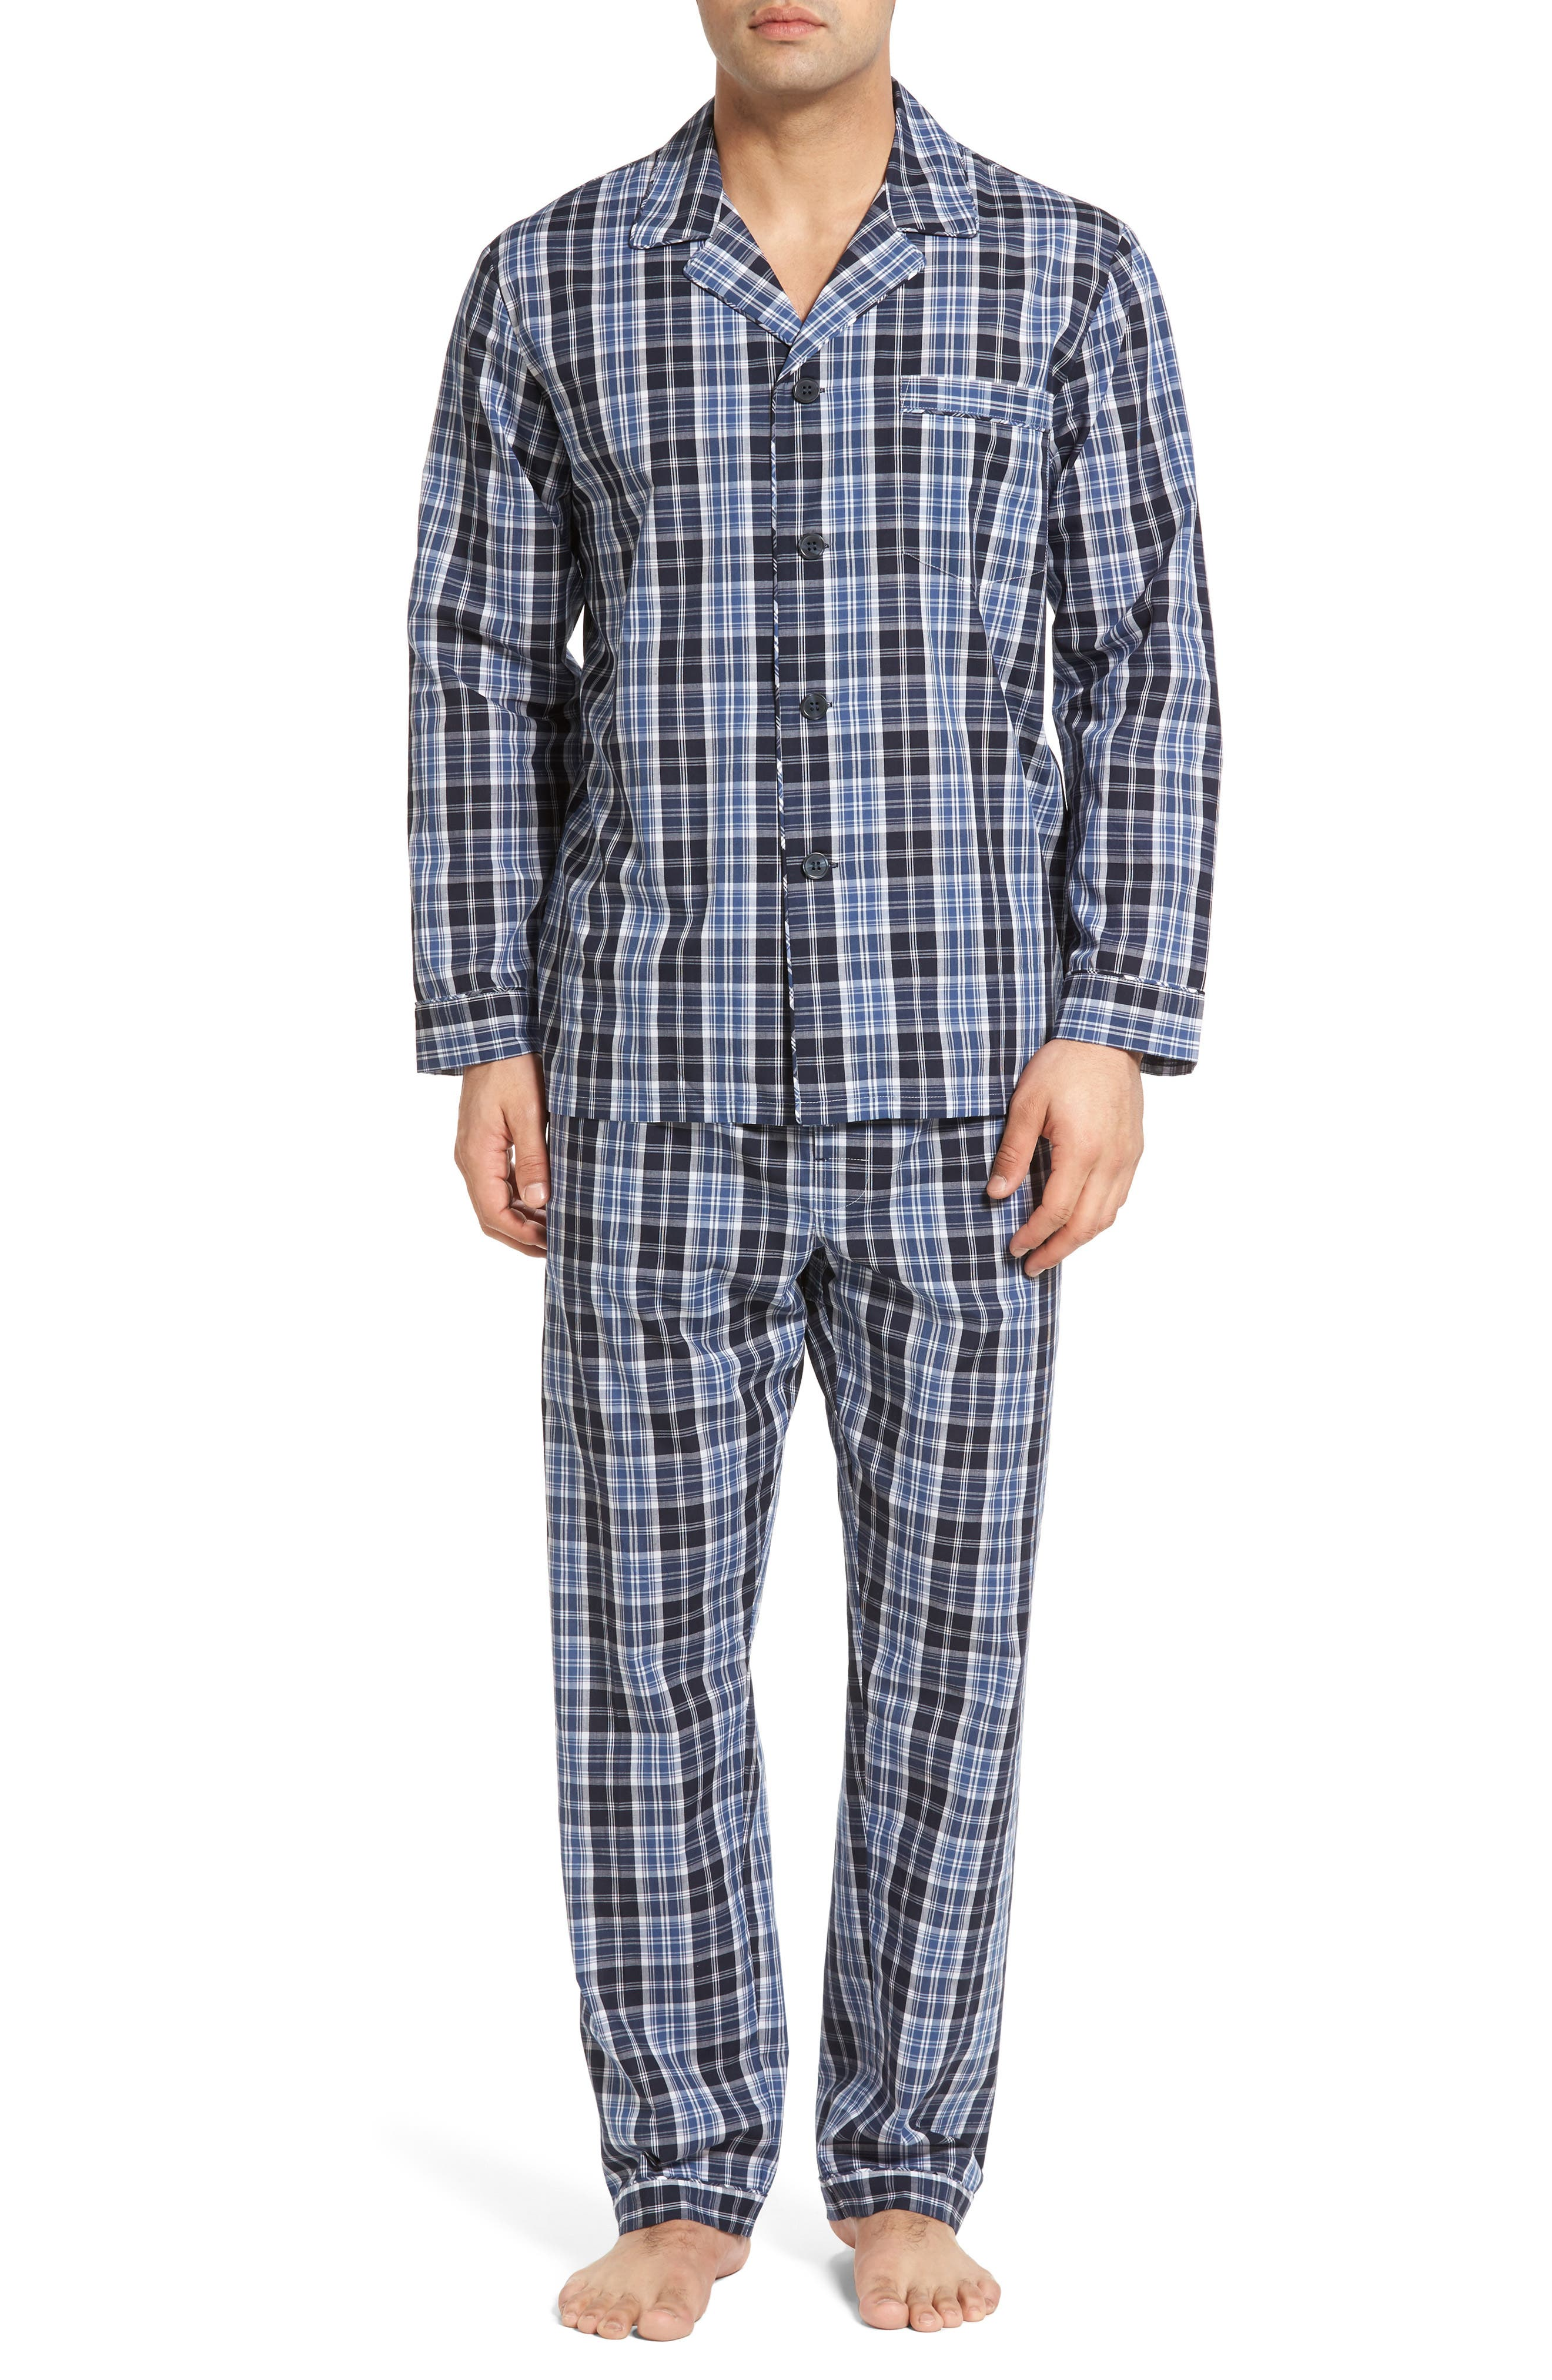 'Ryden' Cotton Blend Pajamas,                             Main thumbnail 1, color,                             001